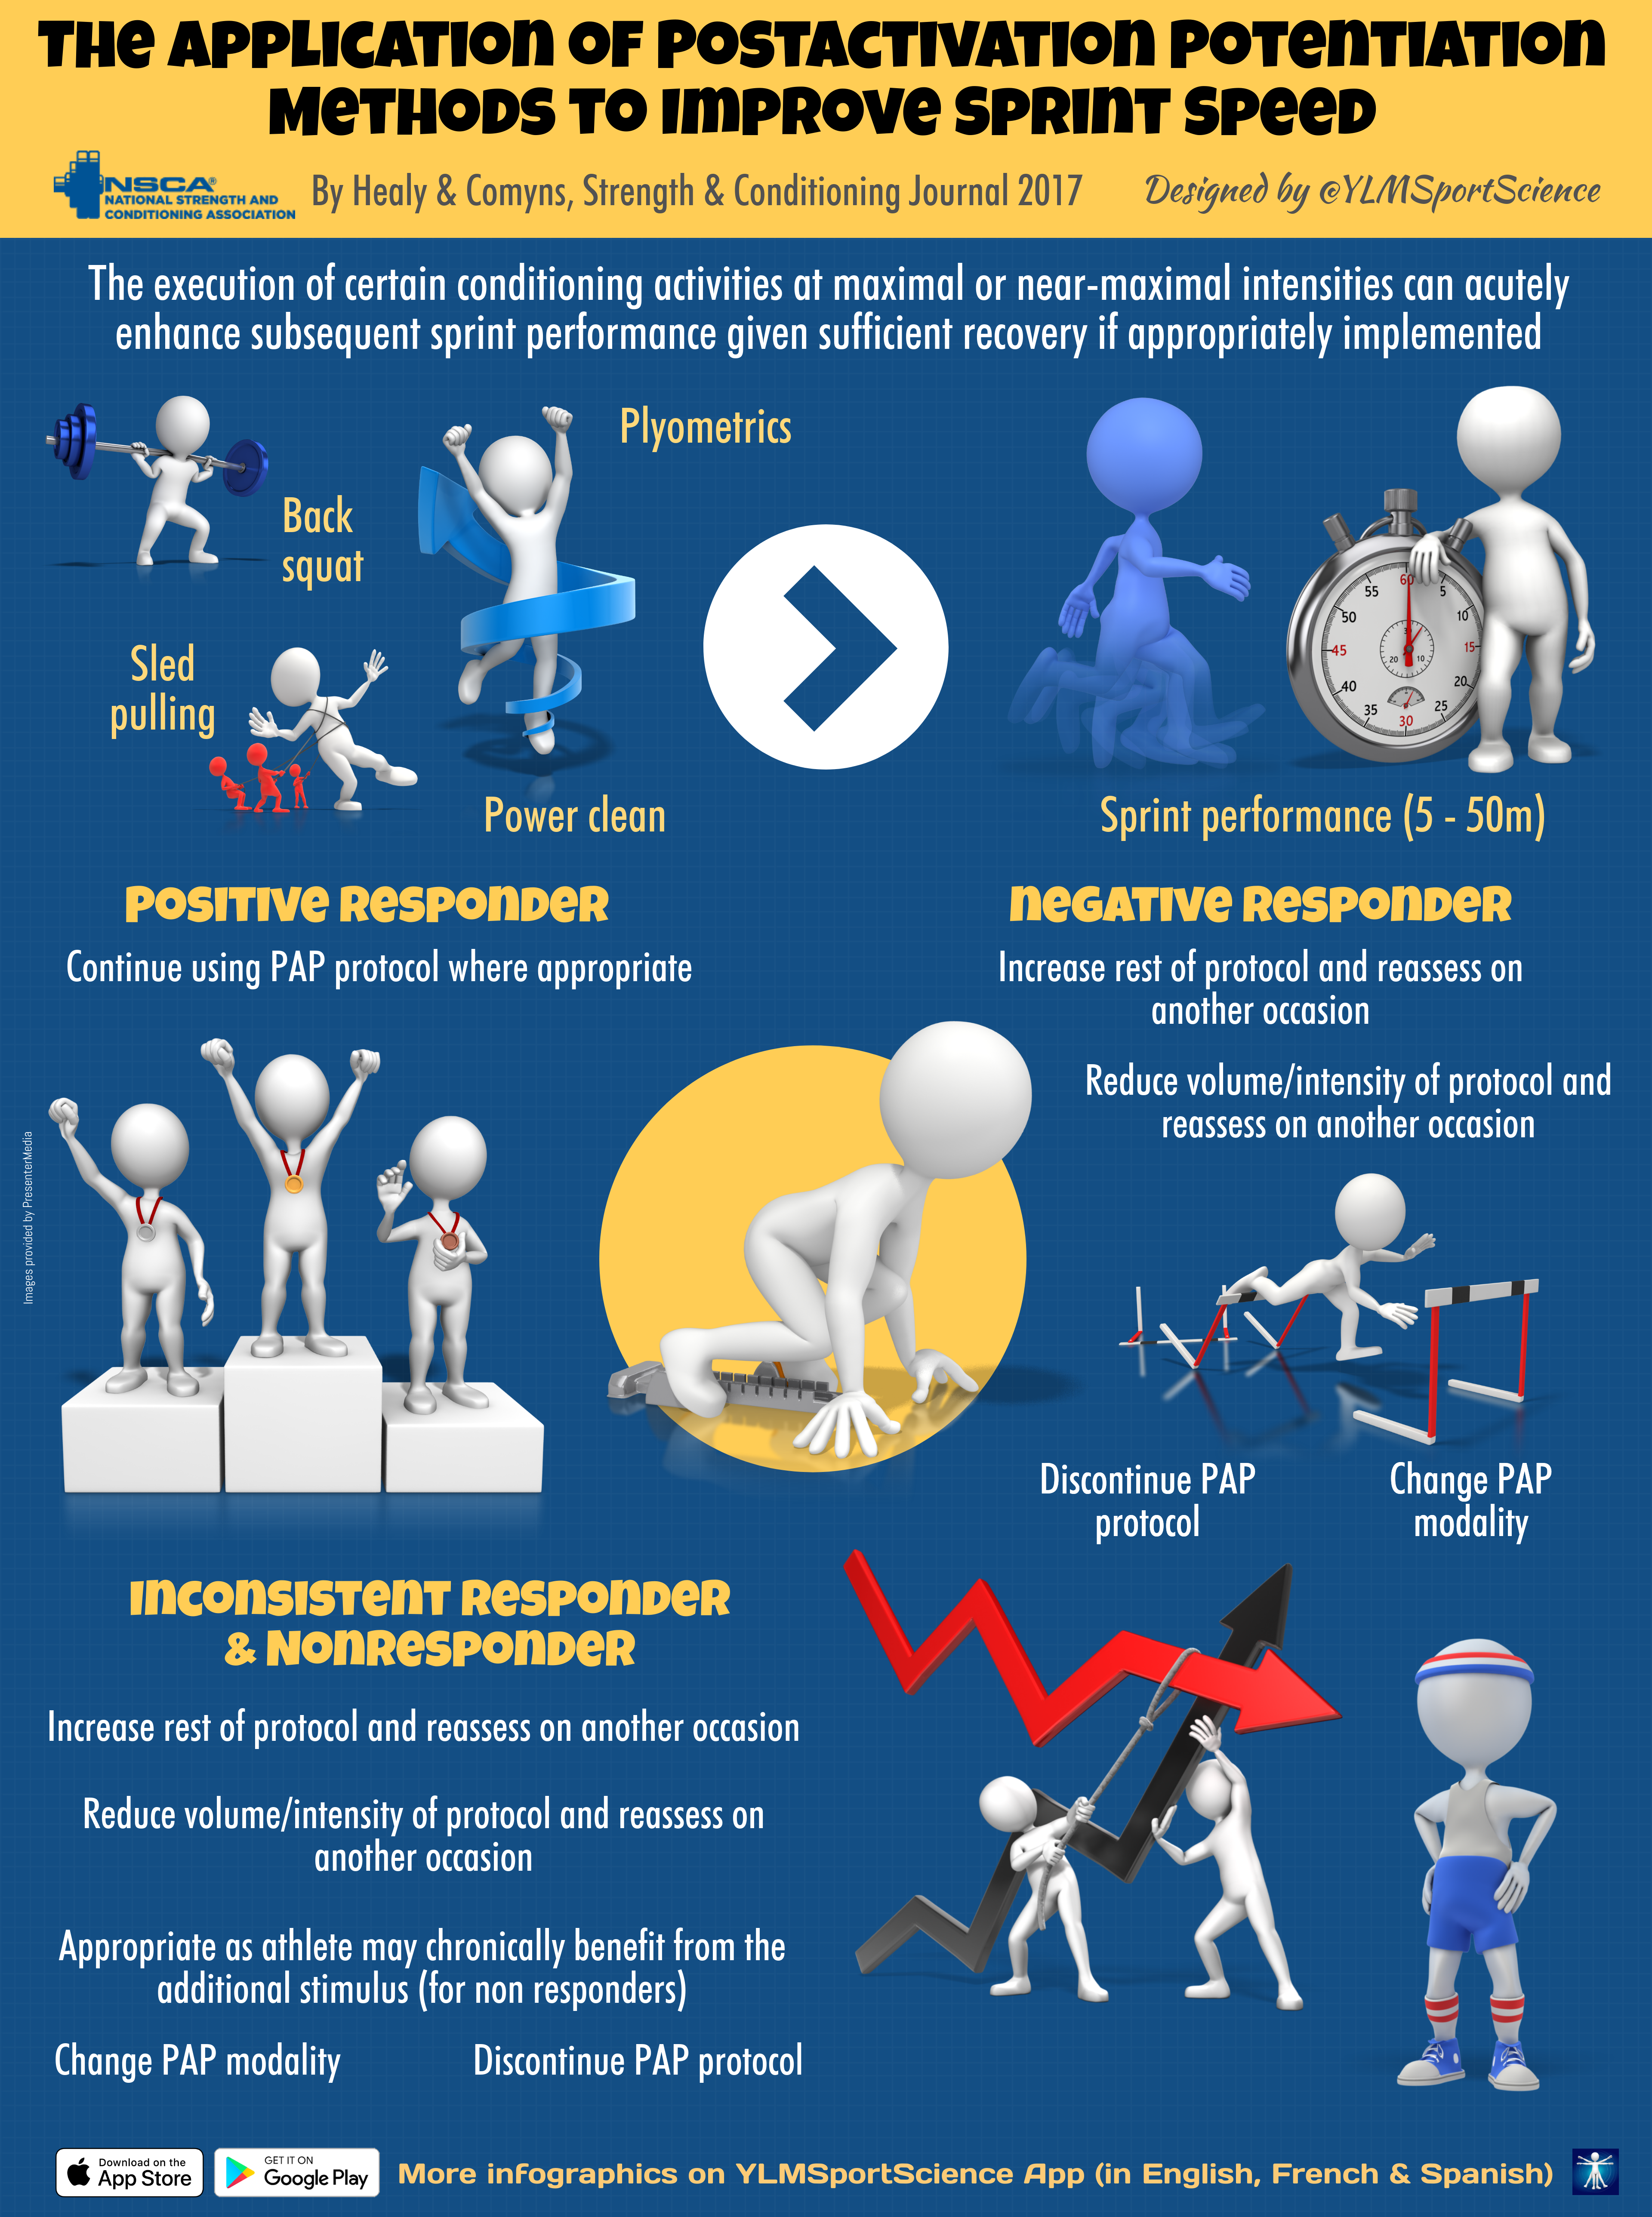 The Application of Post-activation Potentiation Methods to Improve Sprint Speed